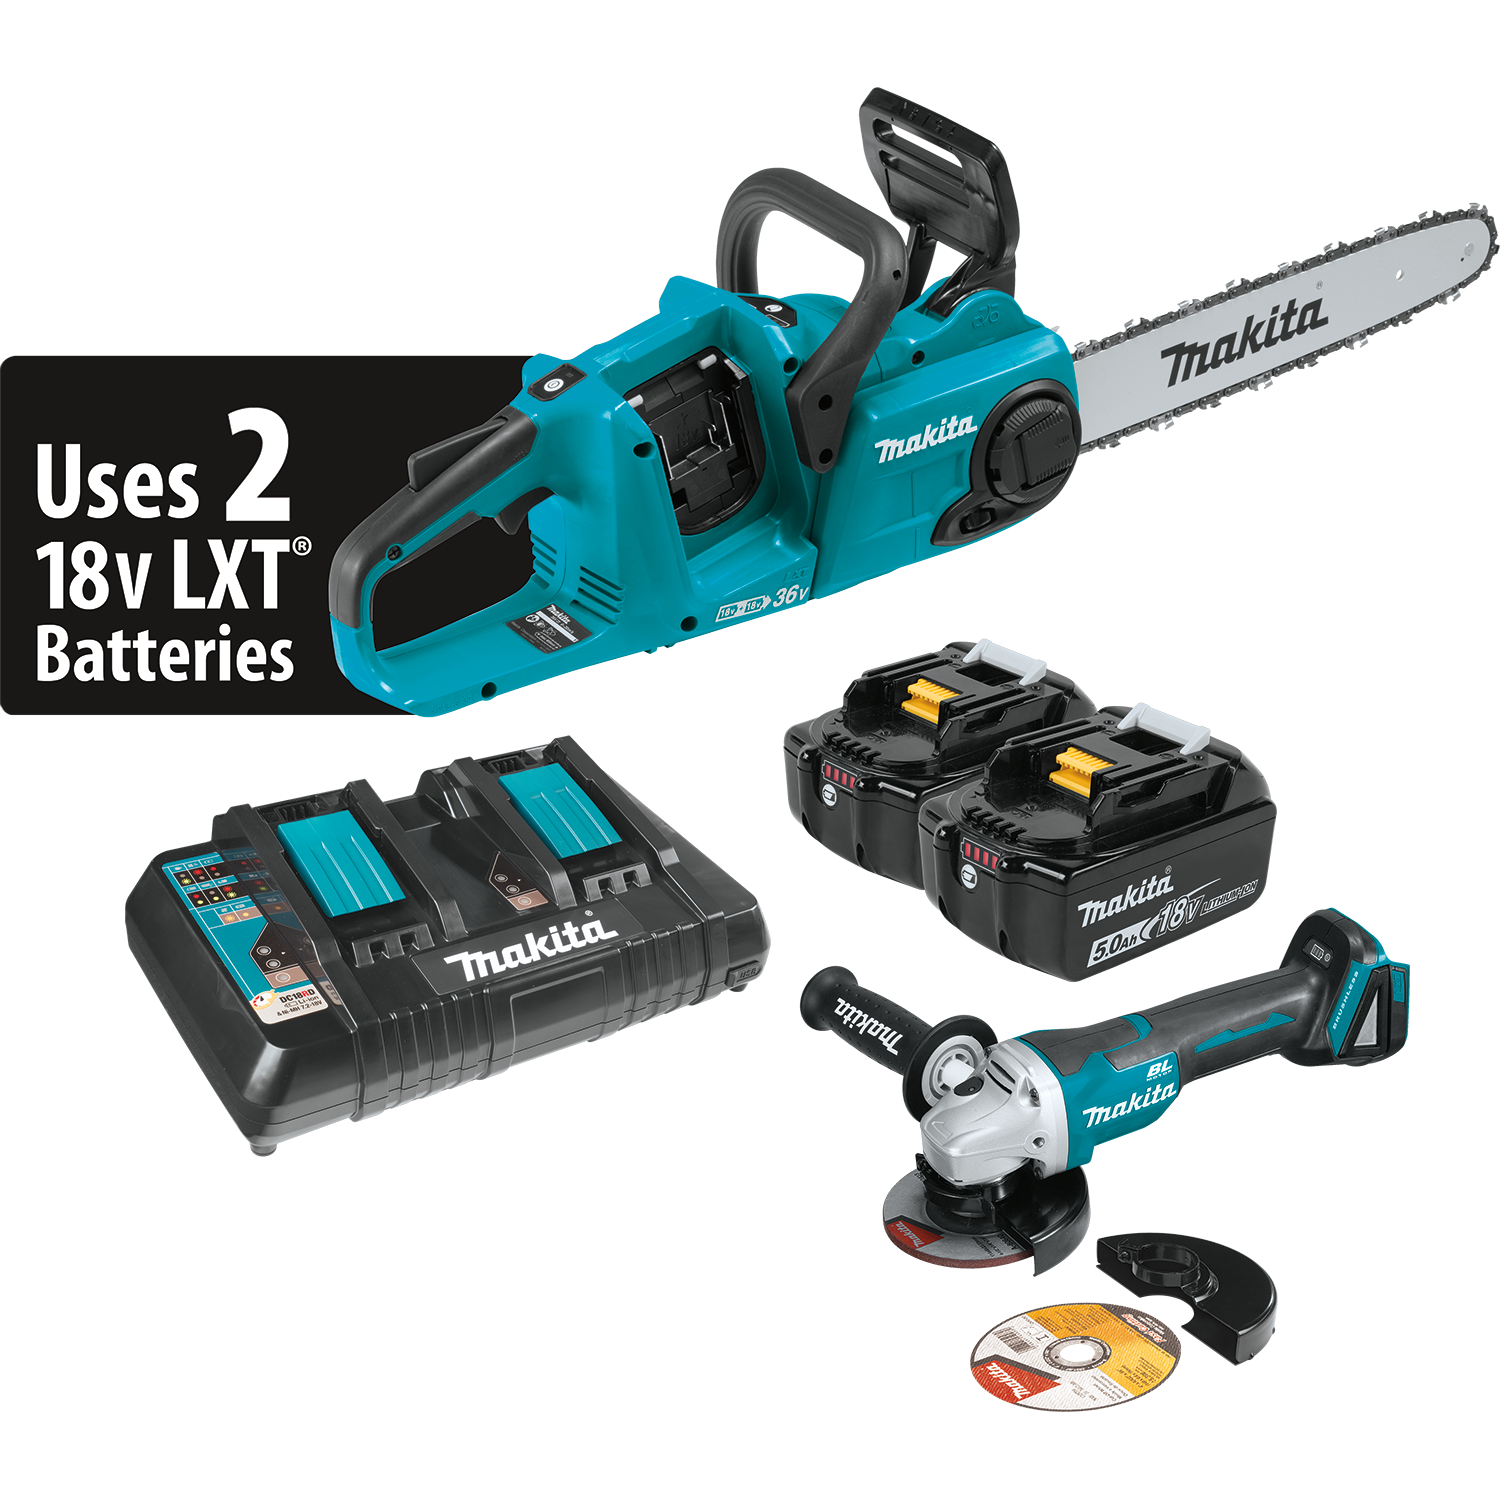 Makita usa product details xcu03pt xcu03ptx1 18v x2 36v lxt brushless 14 chain saw kit and grinder greentooth